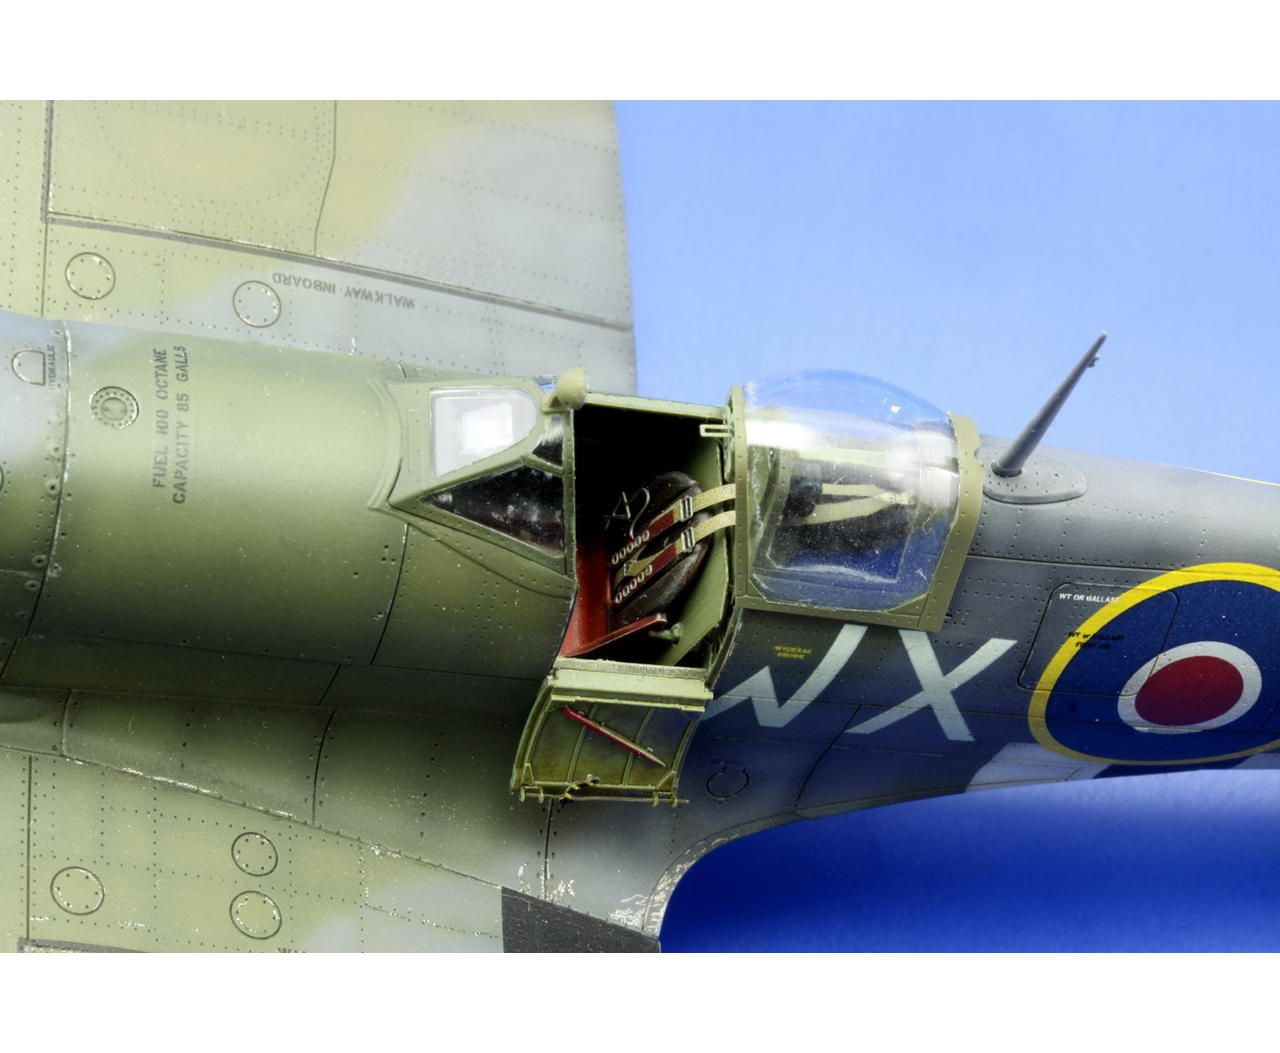 Spitfire Mk Ixc 1 48 Scale Model Model Airplanes Model Planes Model Aeroplanes